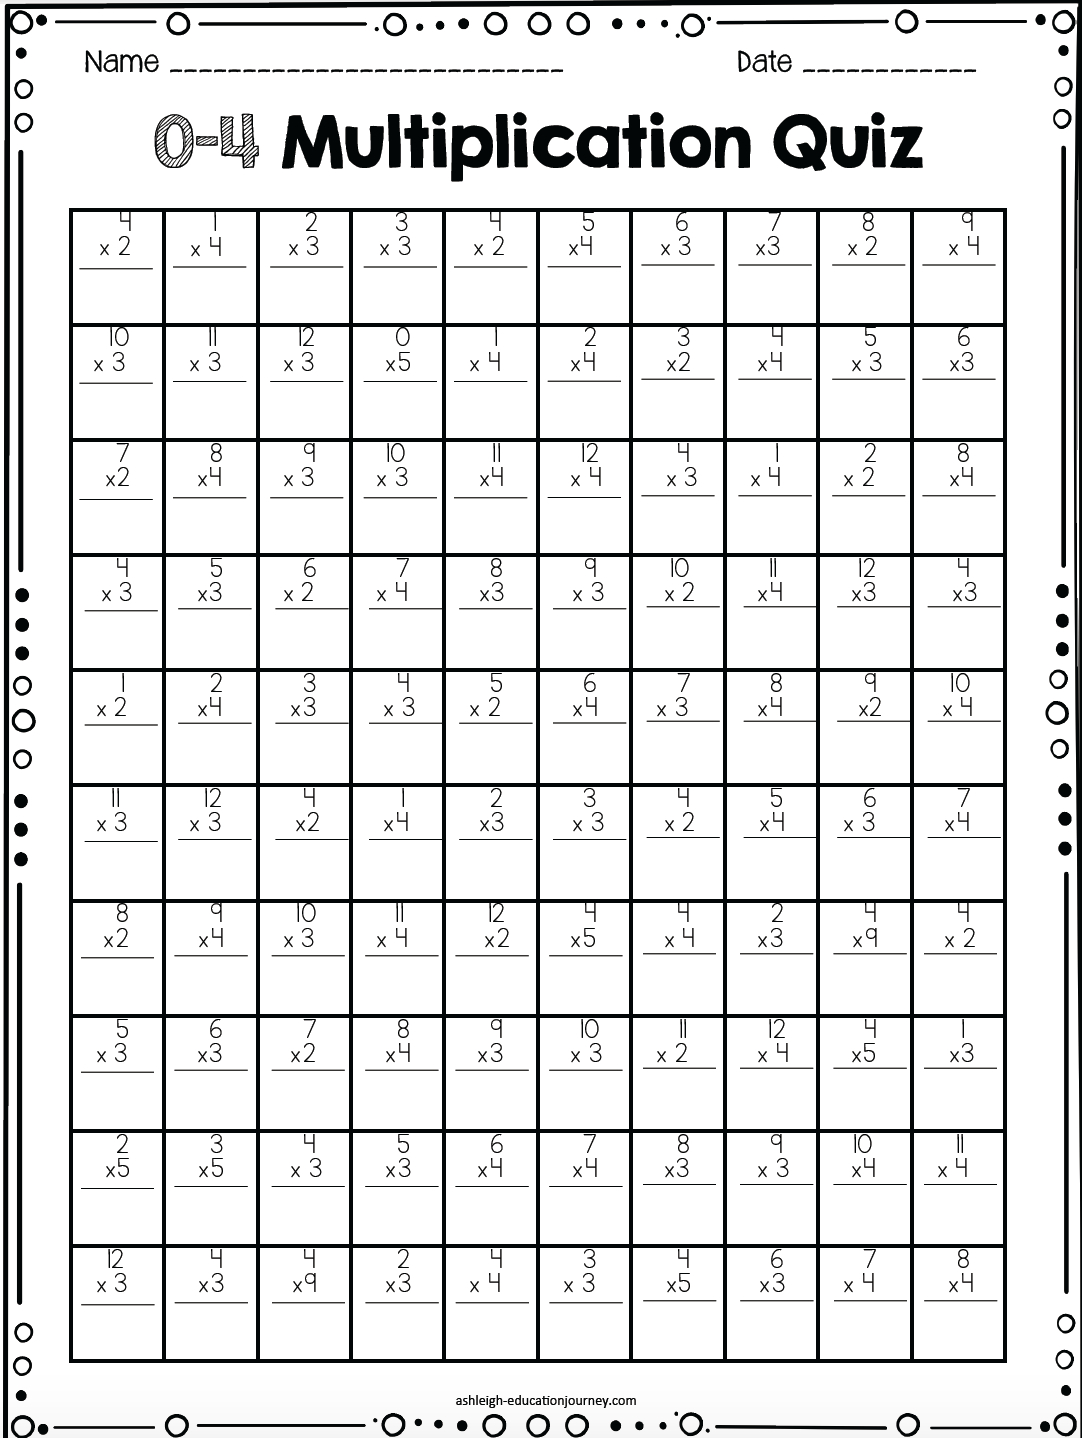 Multiplication Facts For Upper Elementary Students | Class | Math - Free Printable Multiplication Timed Tests